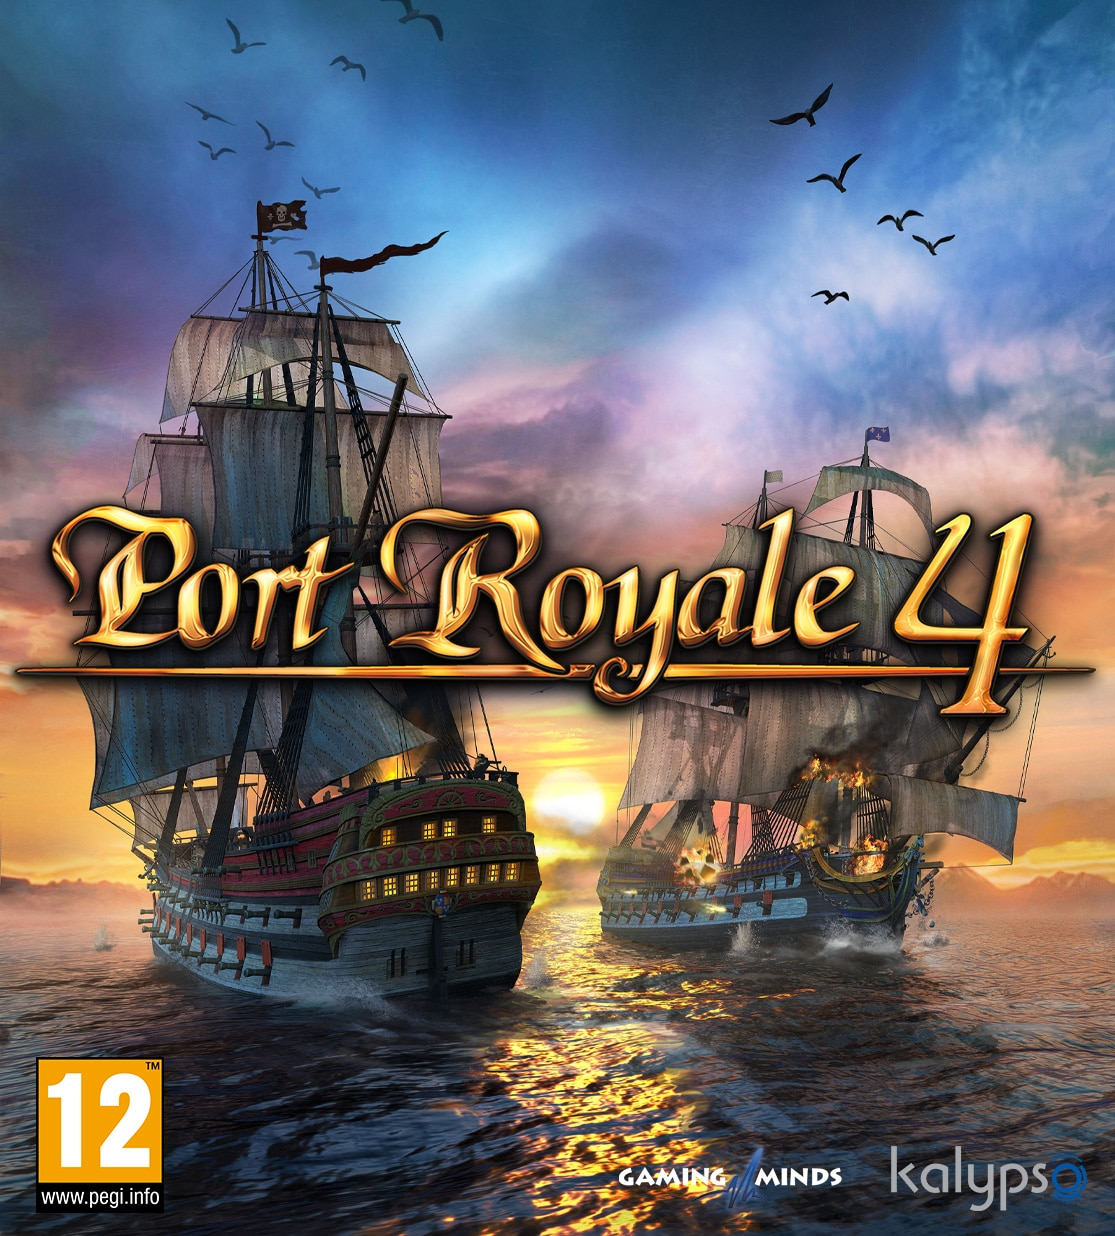 port royale 4 - Ongame Network